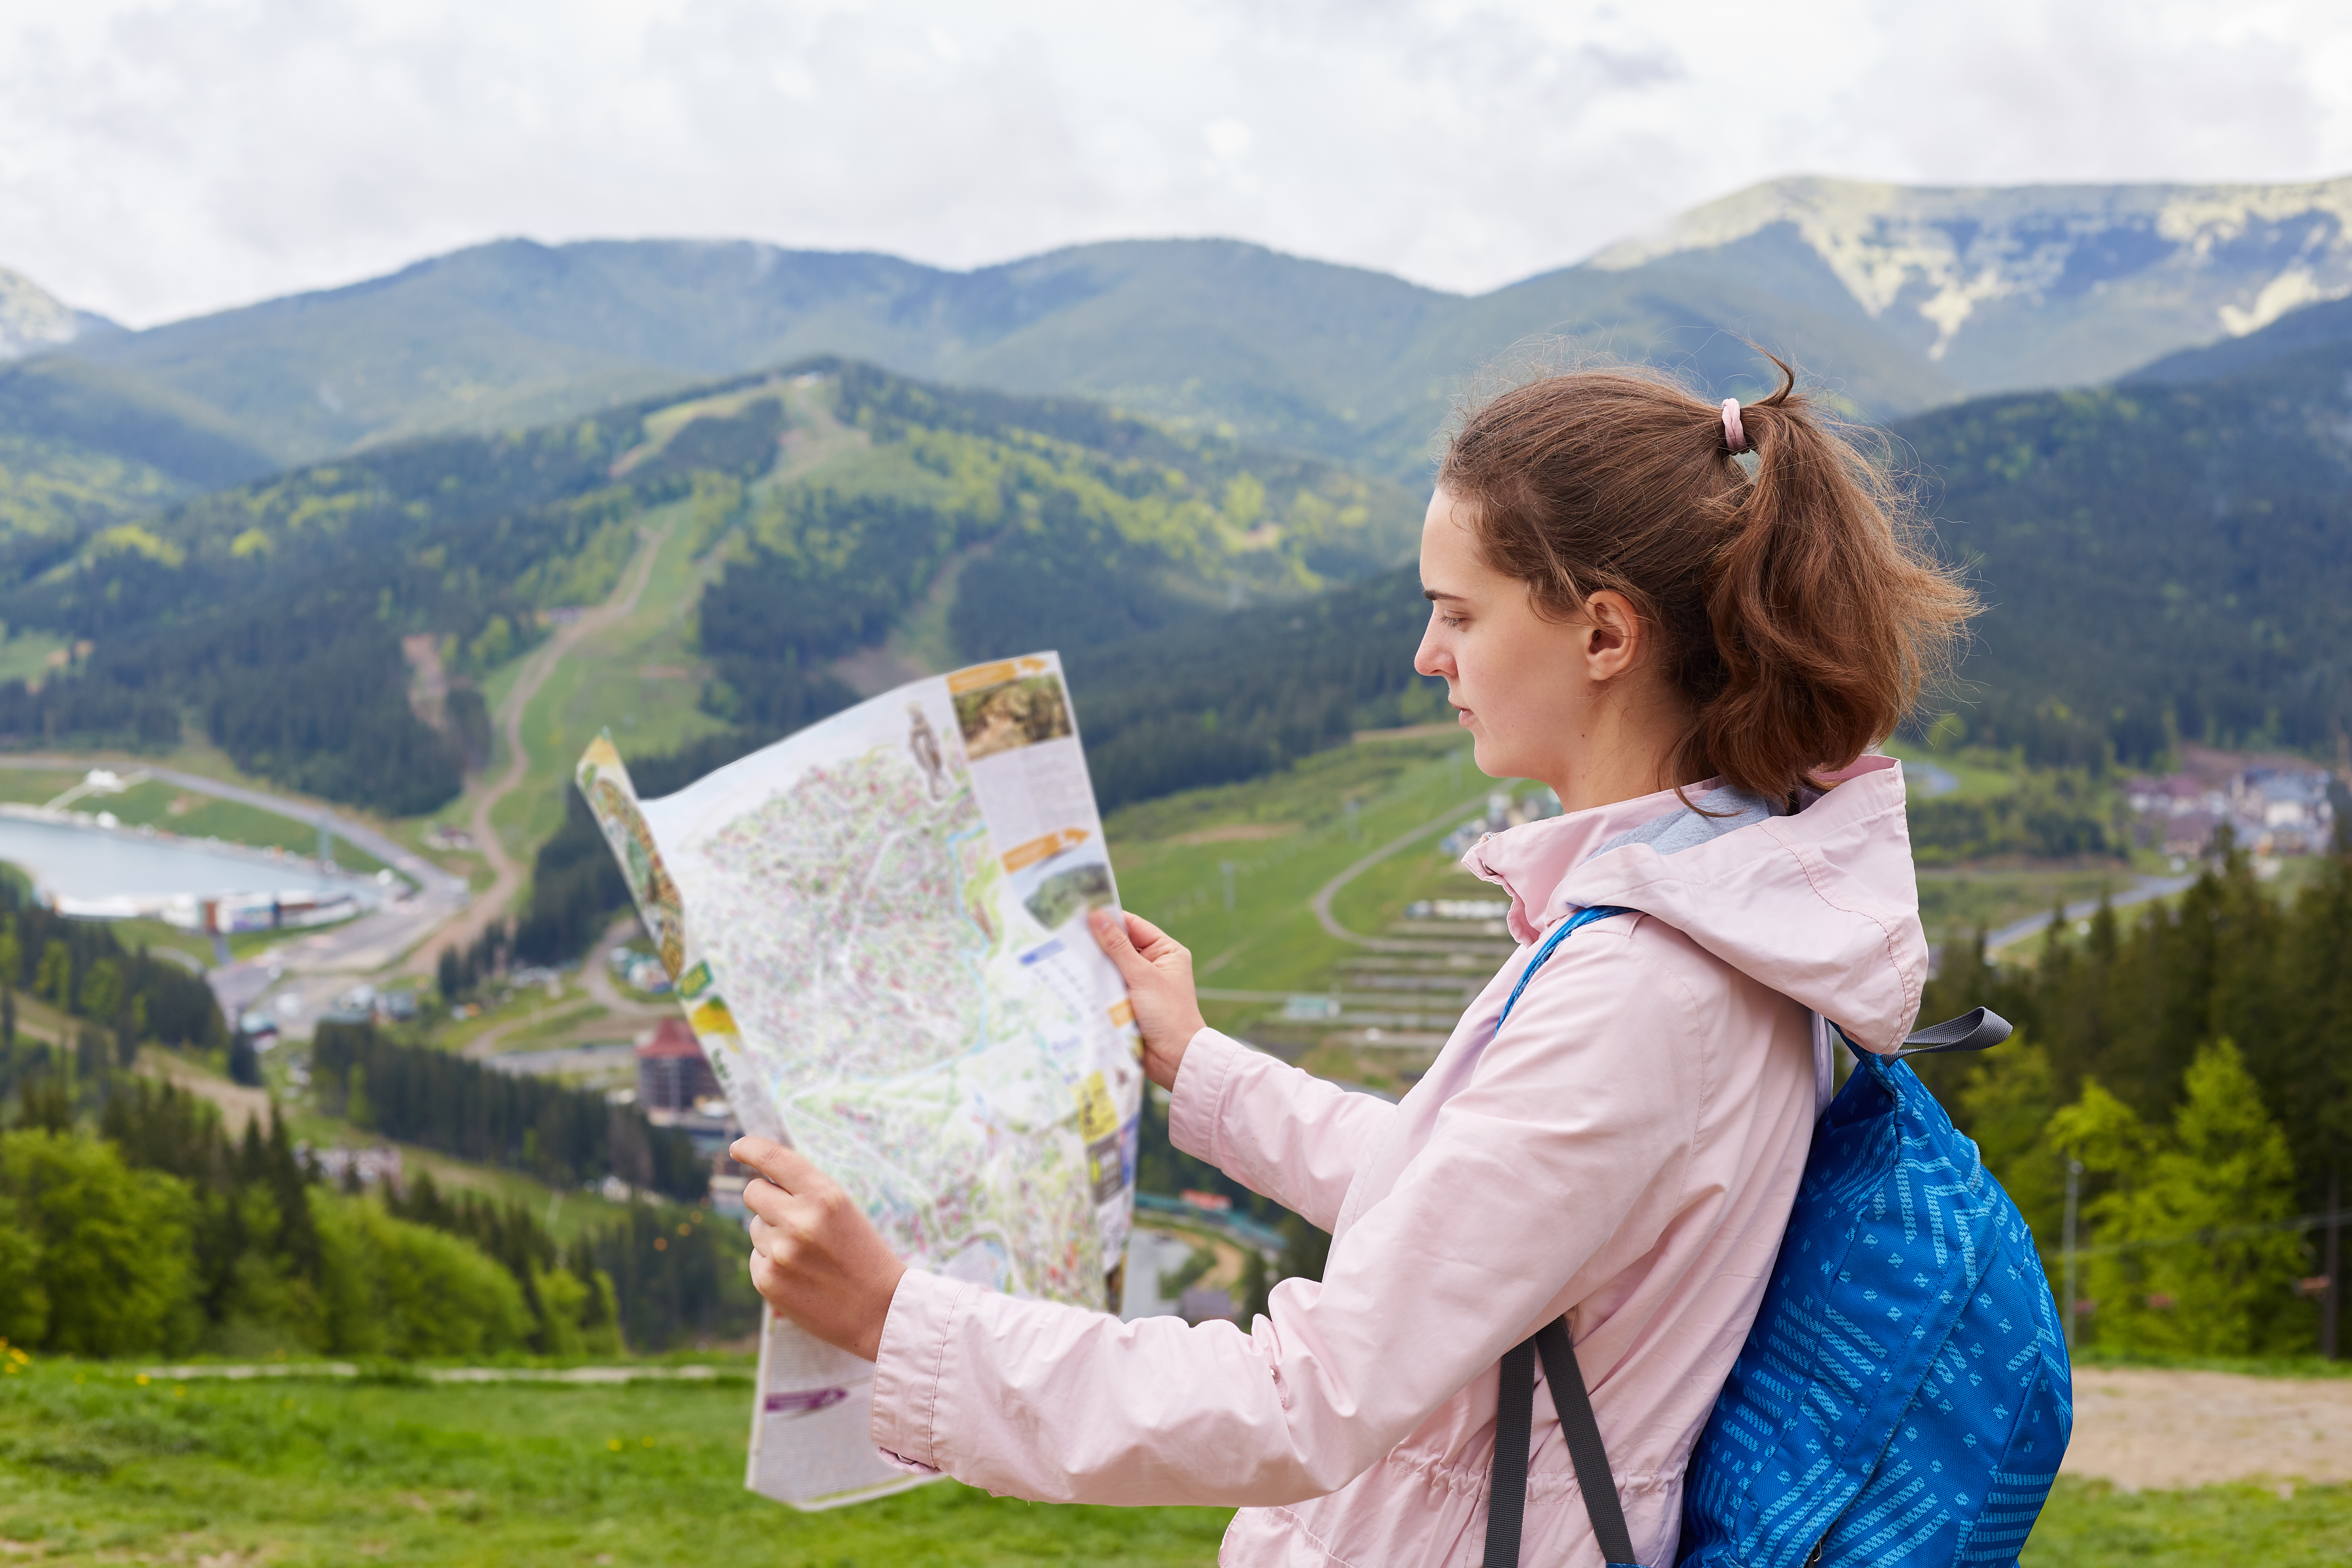 profile-of-attractive-young-tourist-being-lost-on-her-way-looking-at-map-attentively-searching-for-proper-route-standing-at-hill.jpg